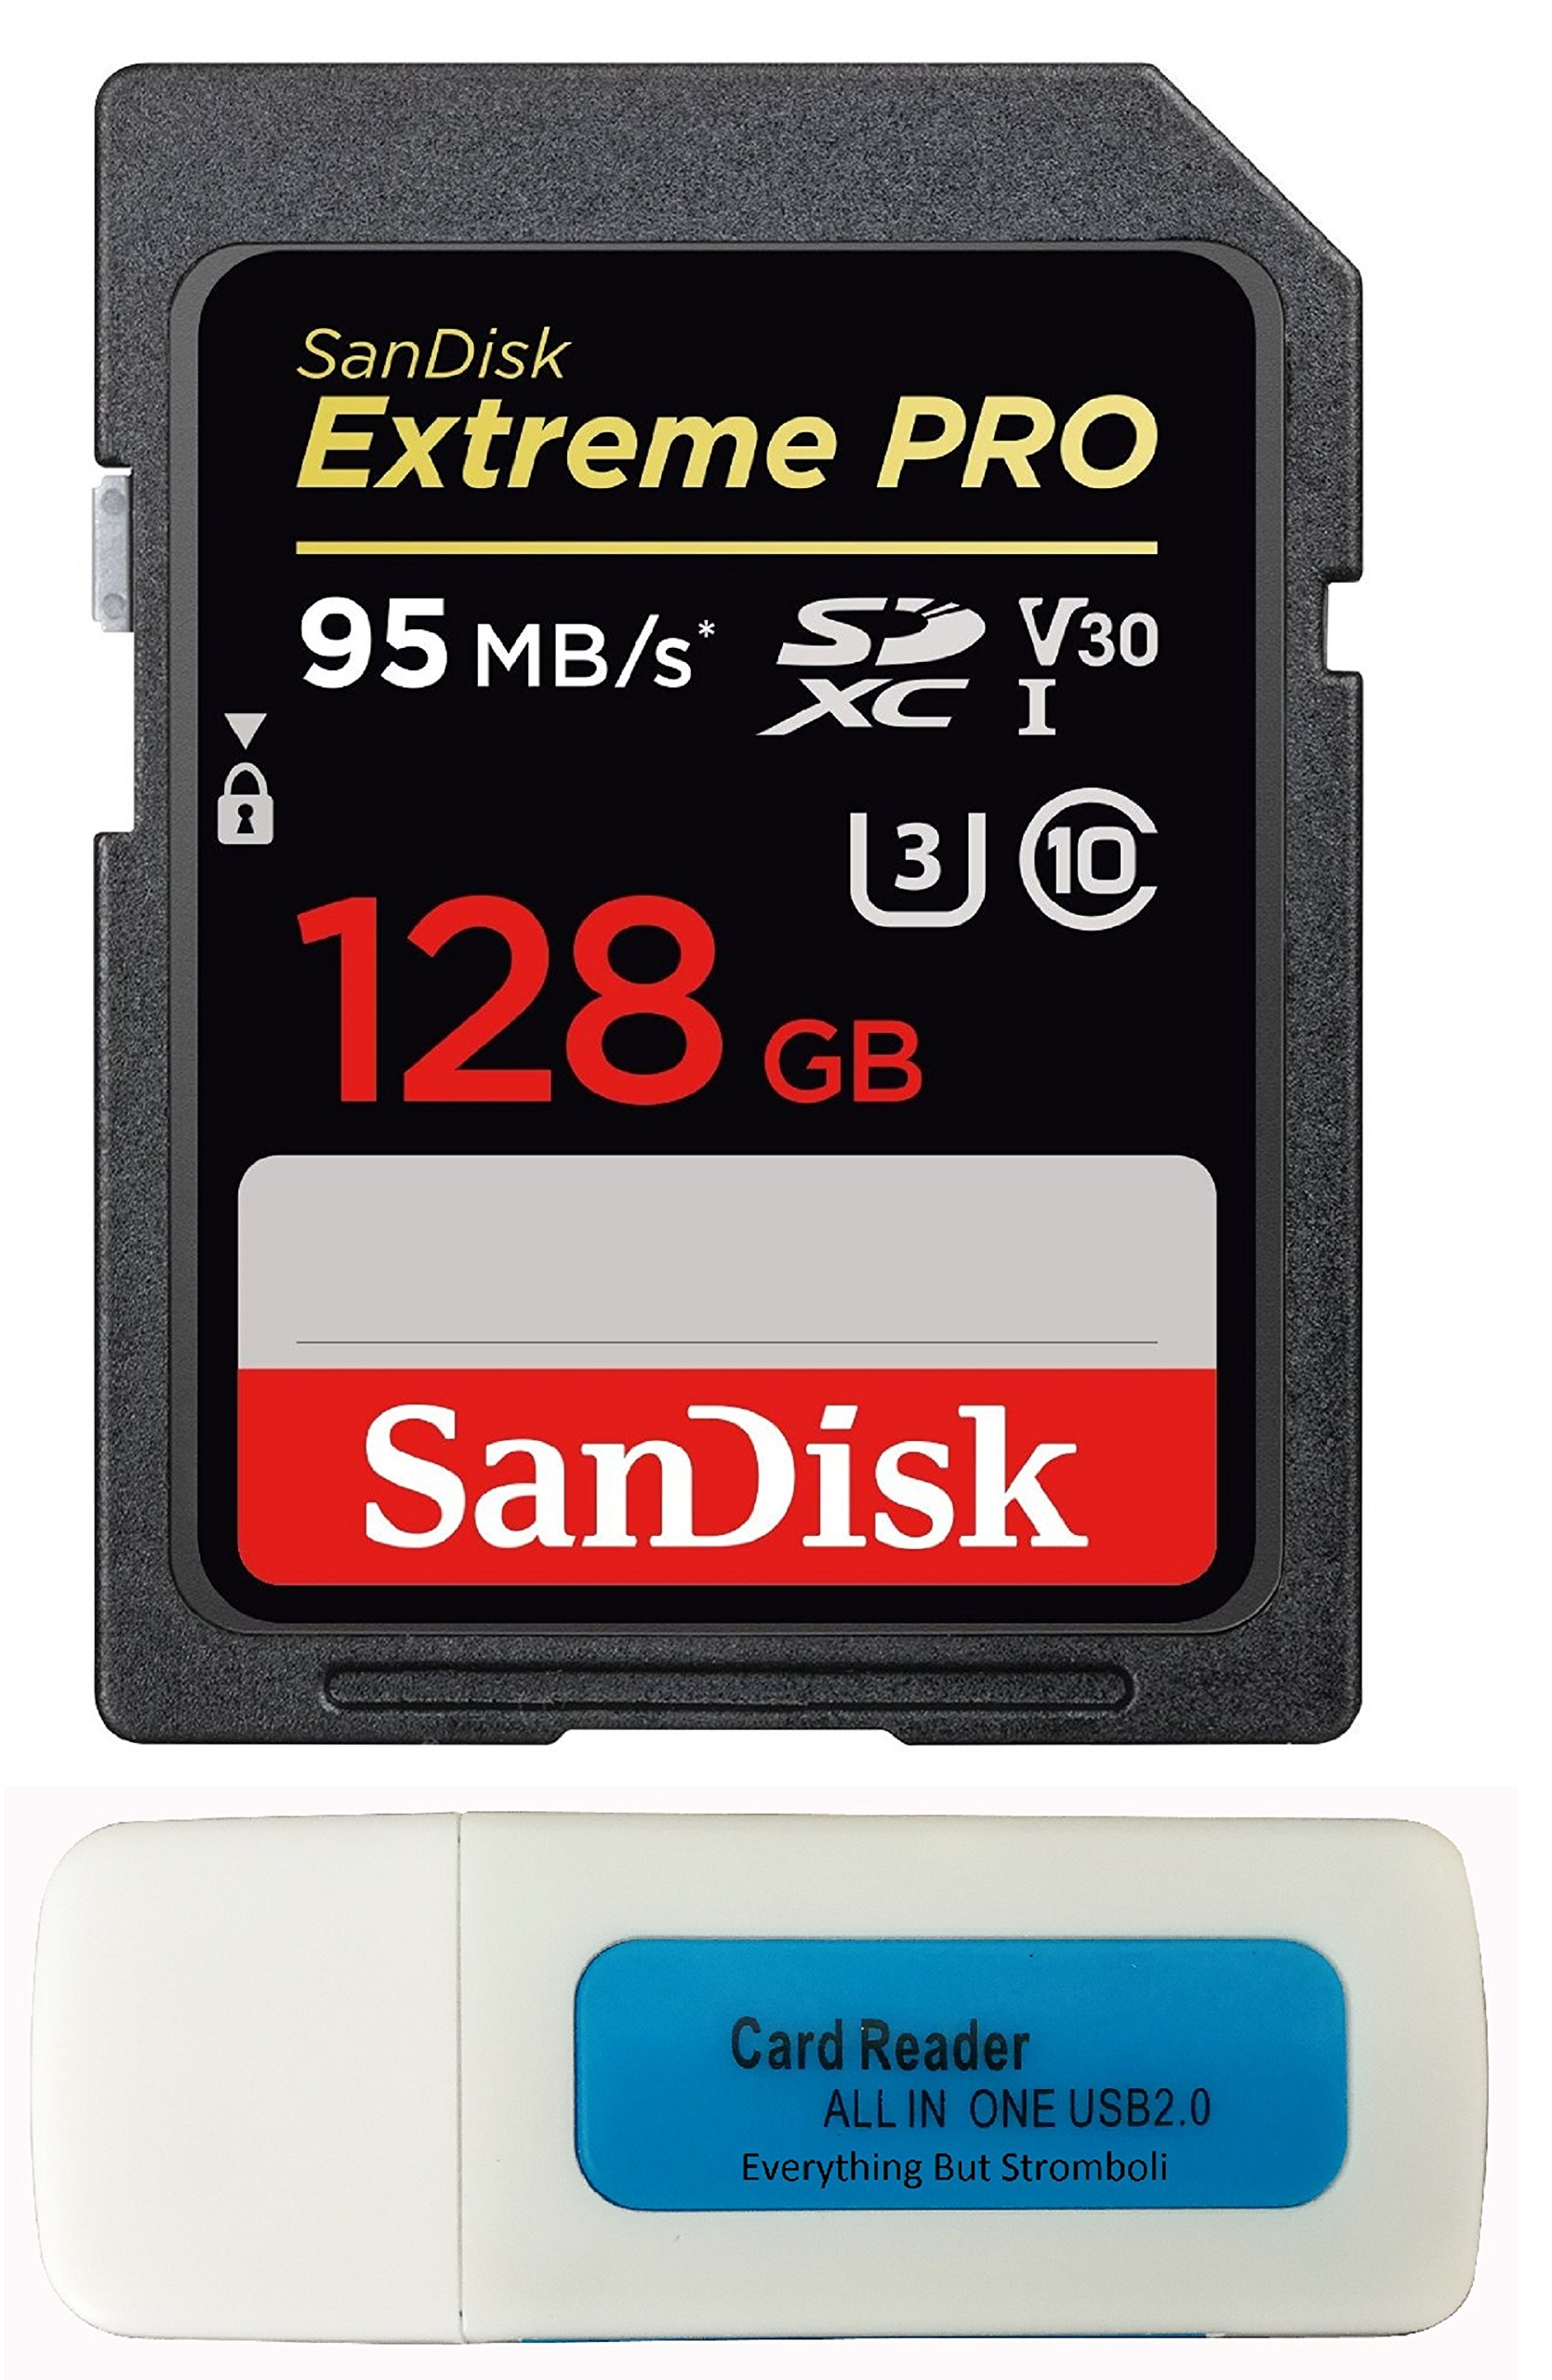 Nikon D850 SanDisk 128GB Extreme Pro Memory Card works with  FX-format Digital SLR DSLR Camera SDXC 4K V30 UHS-I (SDSDXXG-128G-GN4IN) with Everything But Stromboli Combo Reader